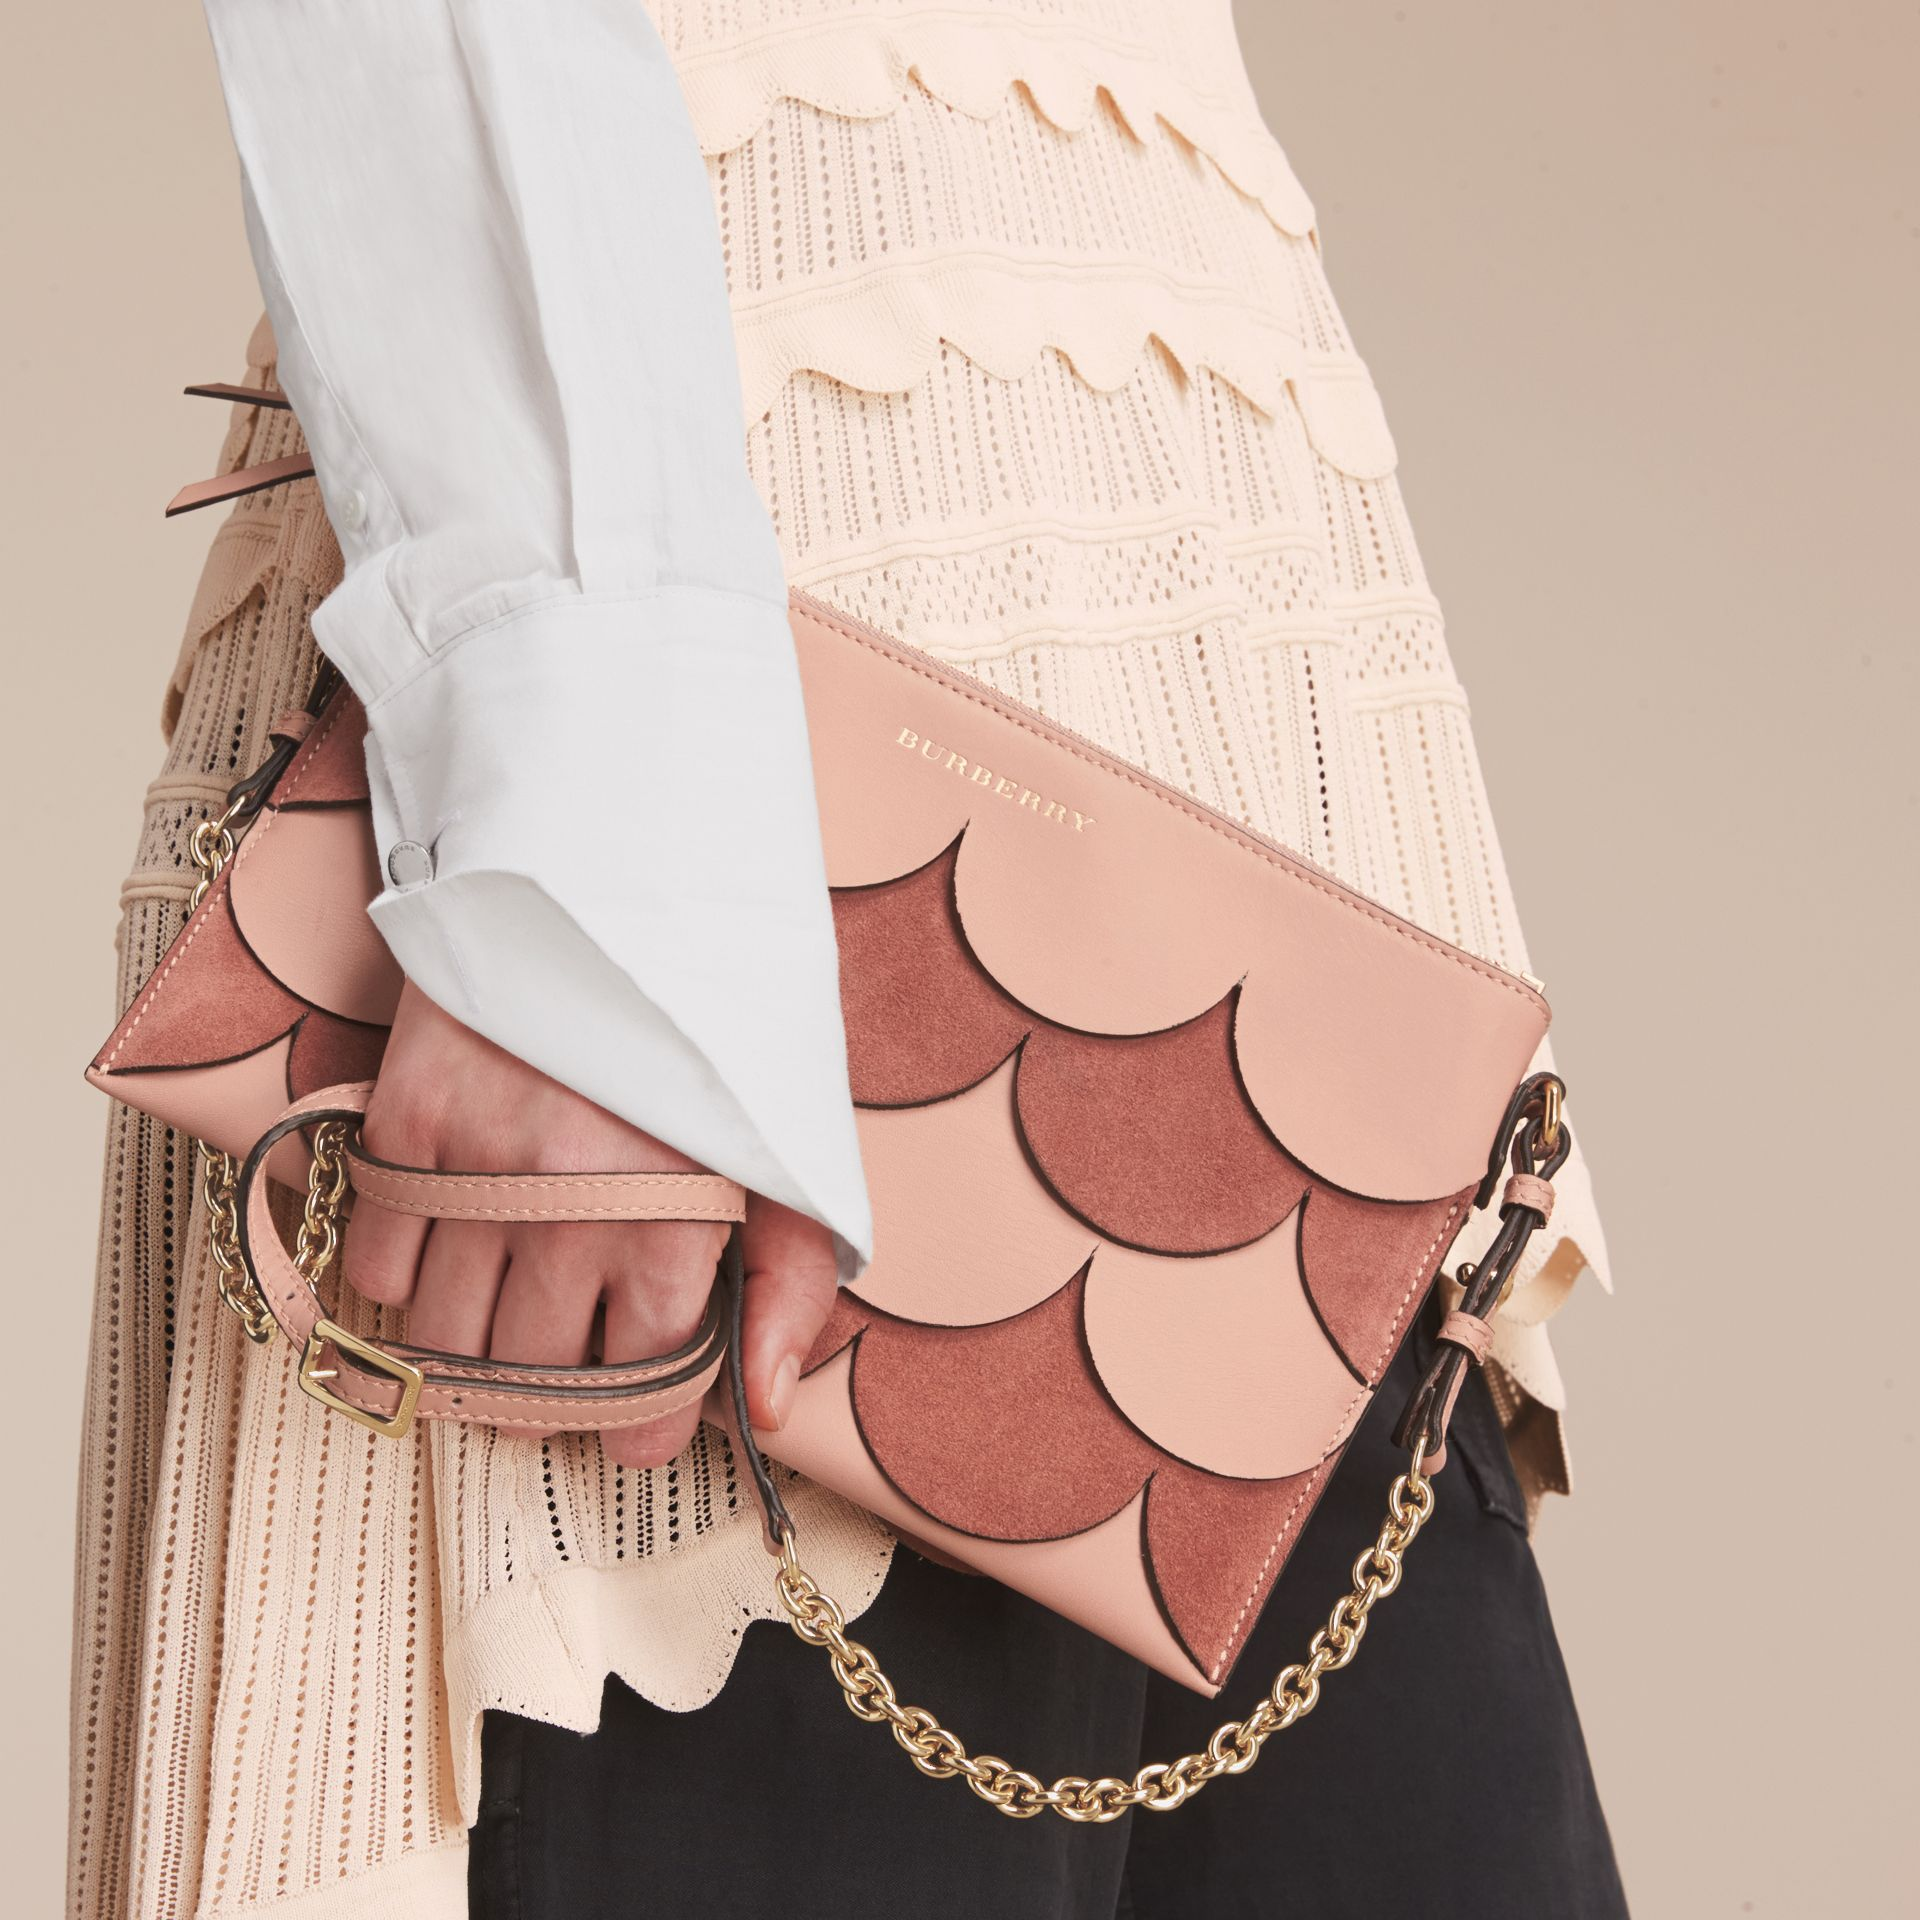 Two-tone Scalloped Leather and Suede Clutch Bag in Ash Rose - Women | Burberry United Kingdom - gallery image 3